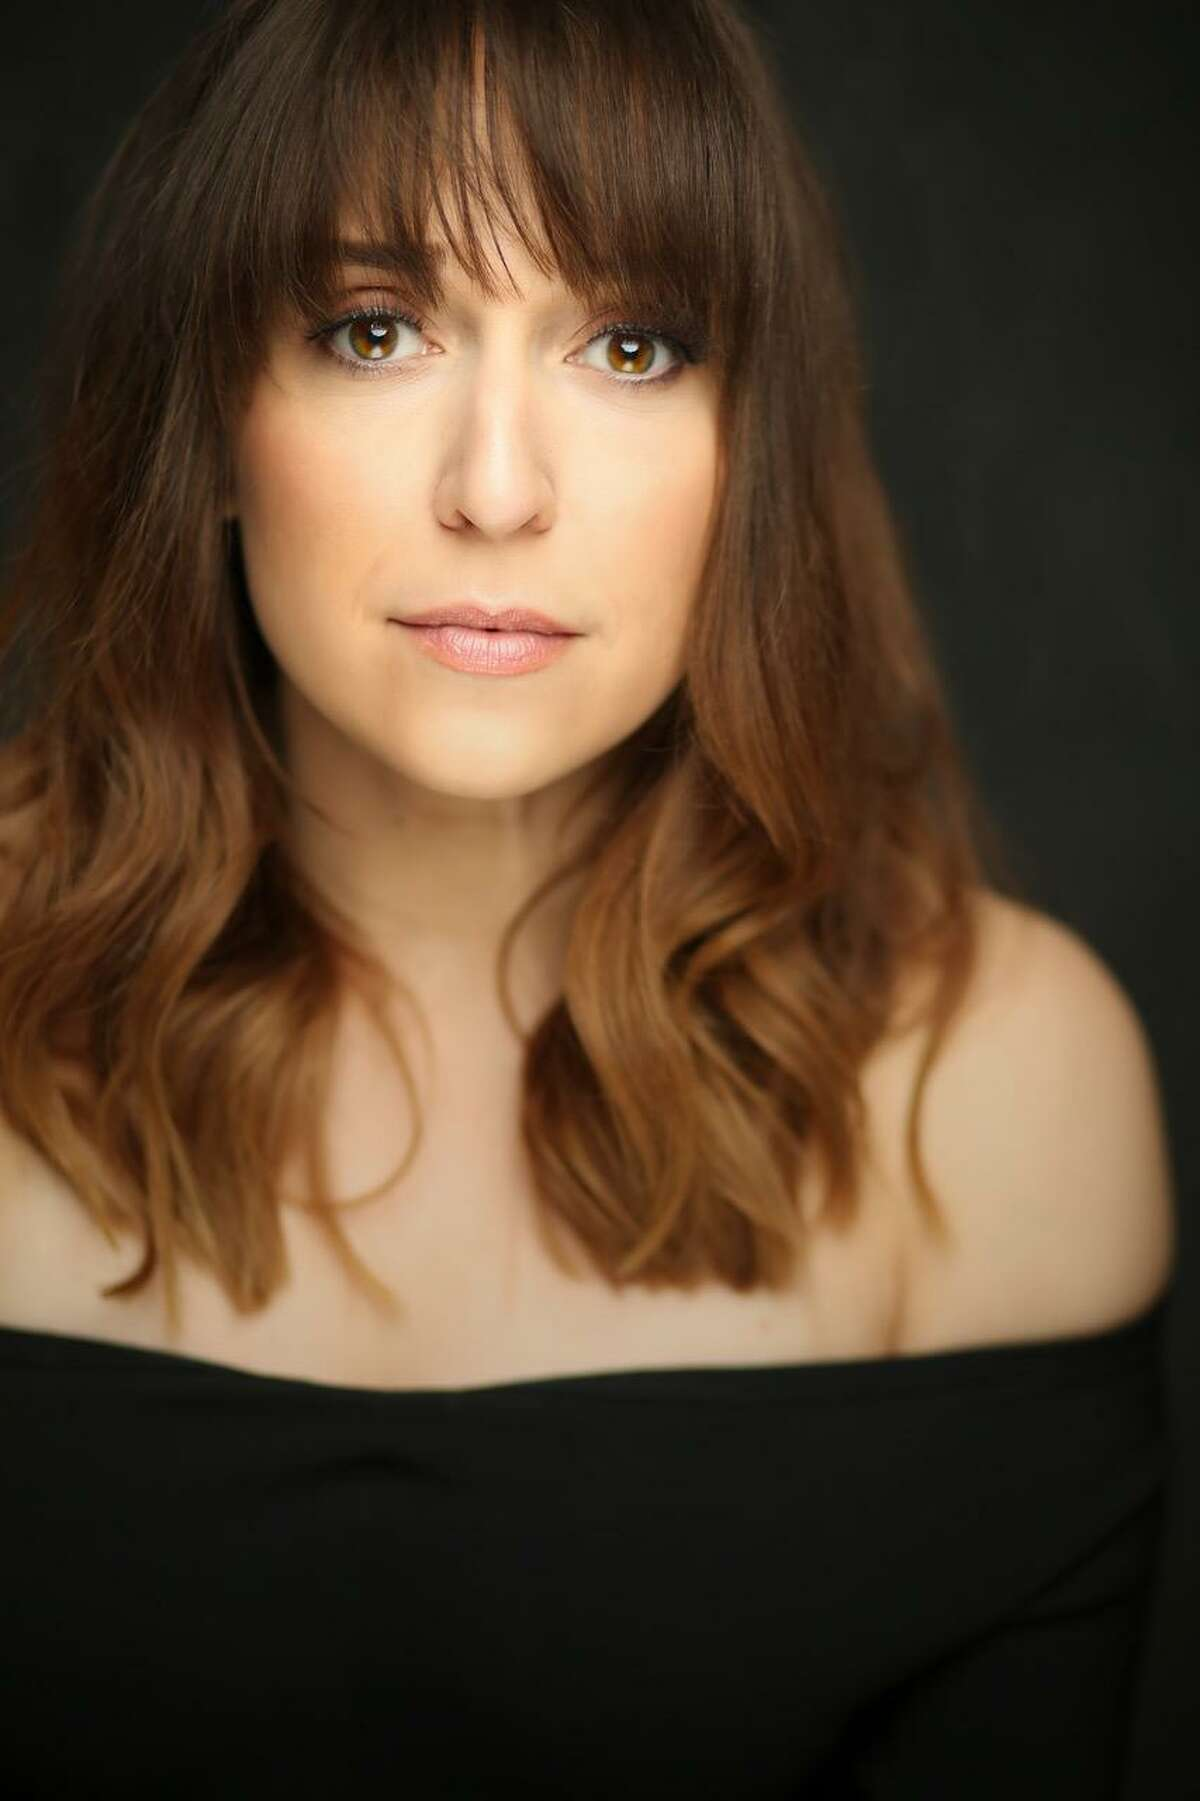 Jessica Vosk will perform as part of the Broadway Unplugged Series on Feb. 25 at 7 p.m. at ACT of CT, 36 Old Quarry Road, Ridgefield. Tickets are $57-$72. For more information, visit actofct.org.